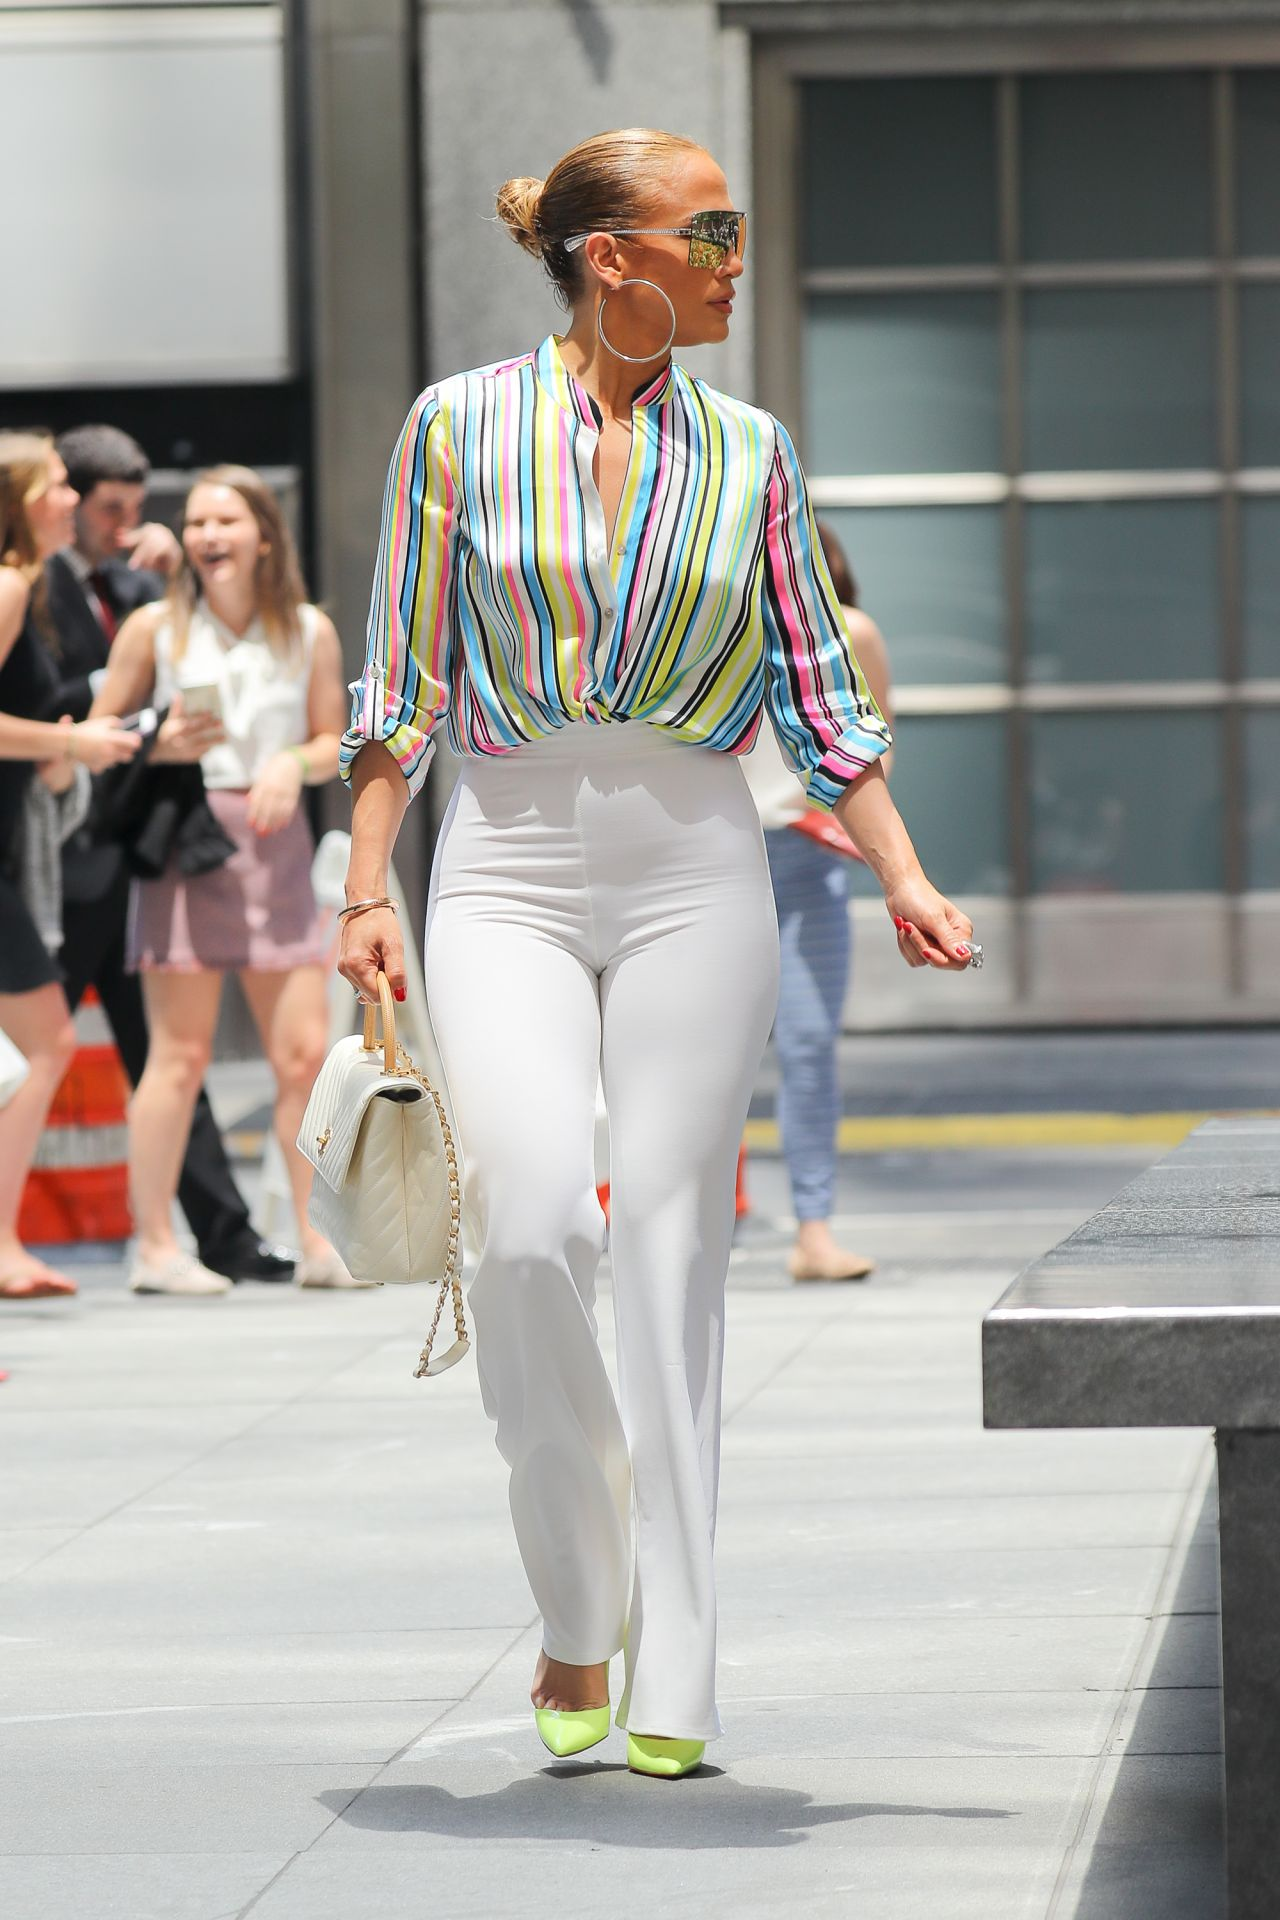 jennifer-lopez-and-alex-rodriguez-leaving-the-casa-lever-in-nyc-06-29-2018-11.jpg